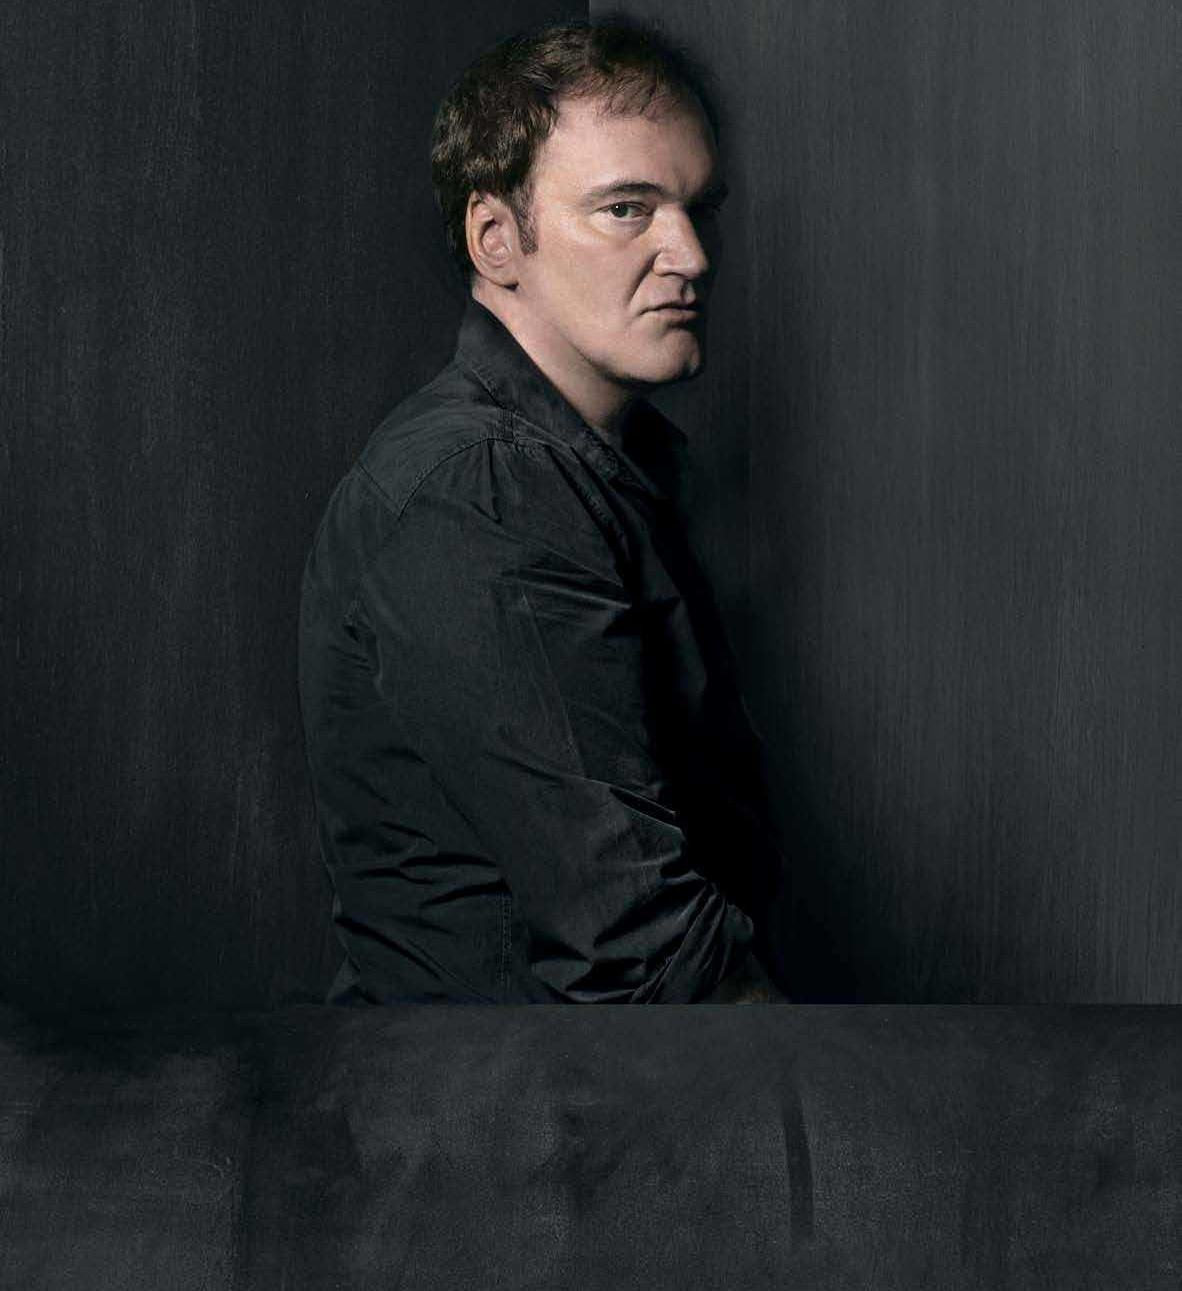 Quentin Tarantino - Back In The Saddle With 'The Hateful Eight'